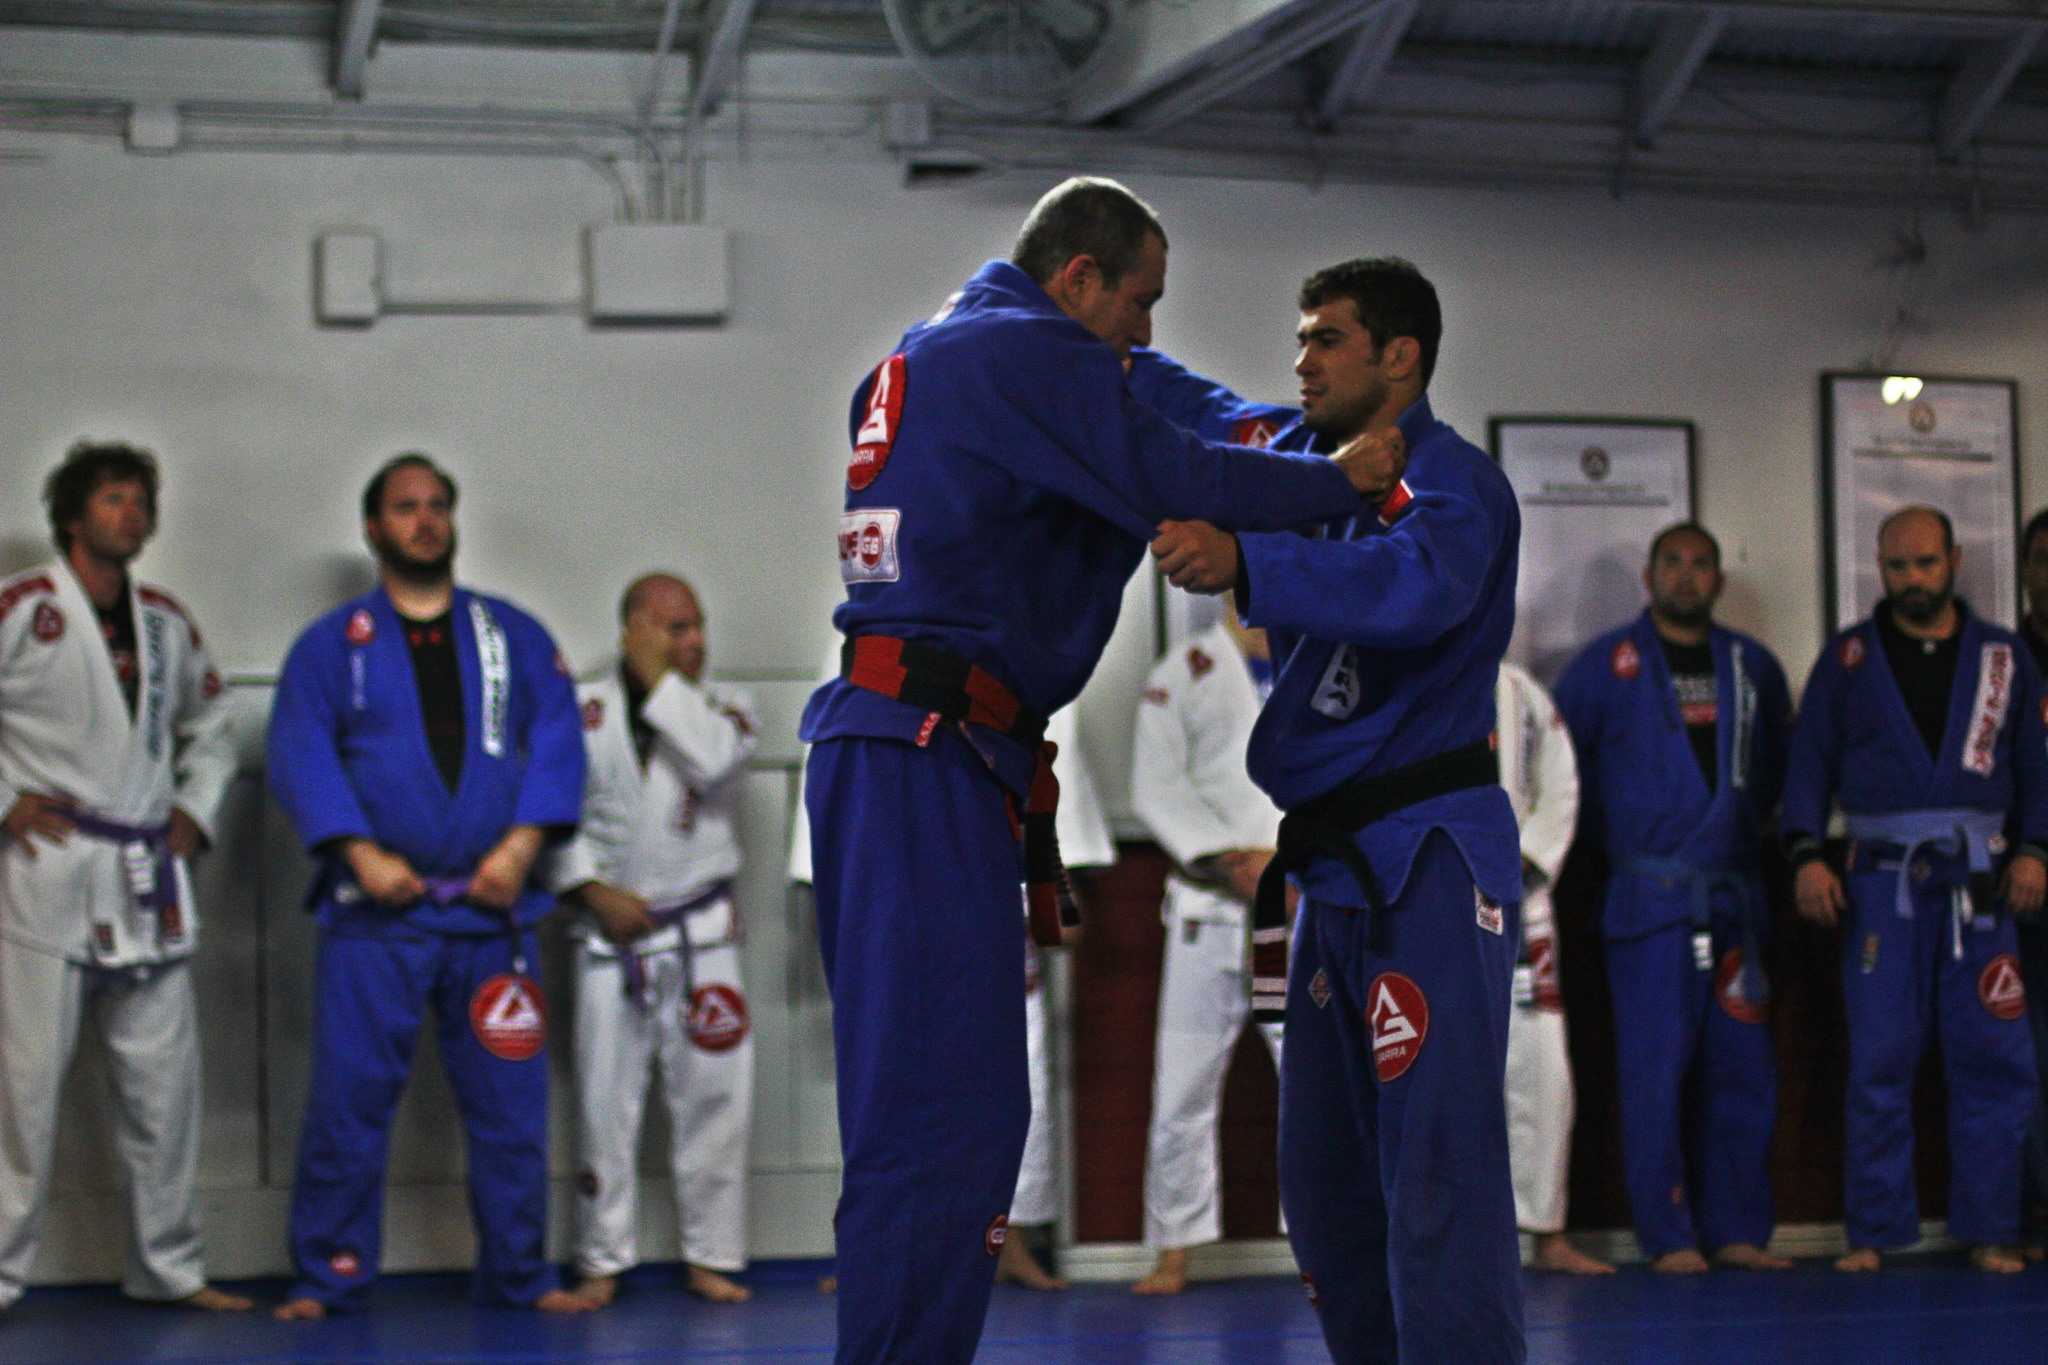 How To Run An Efficient Jiu-Jitsu Class at the Highest Level